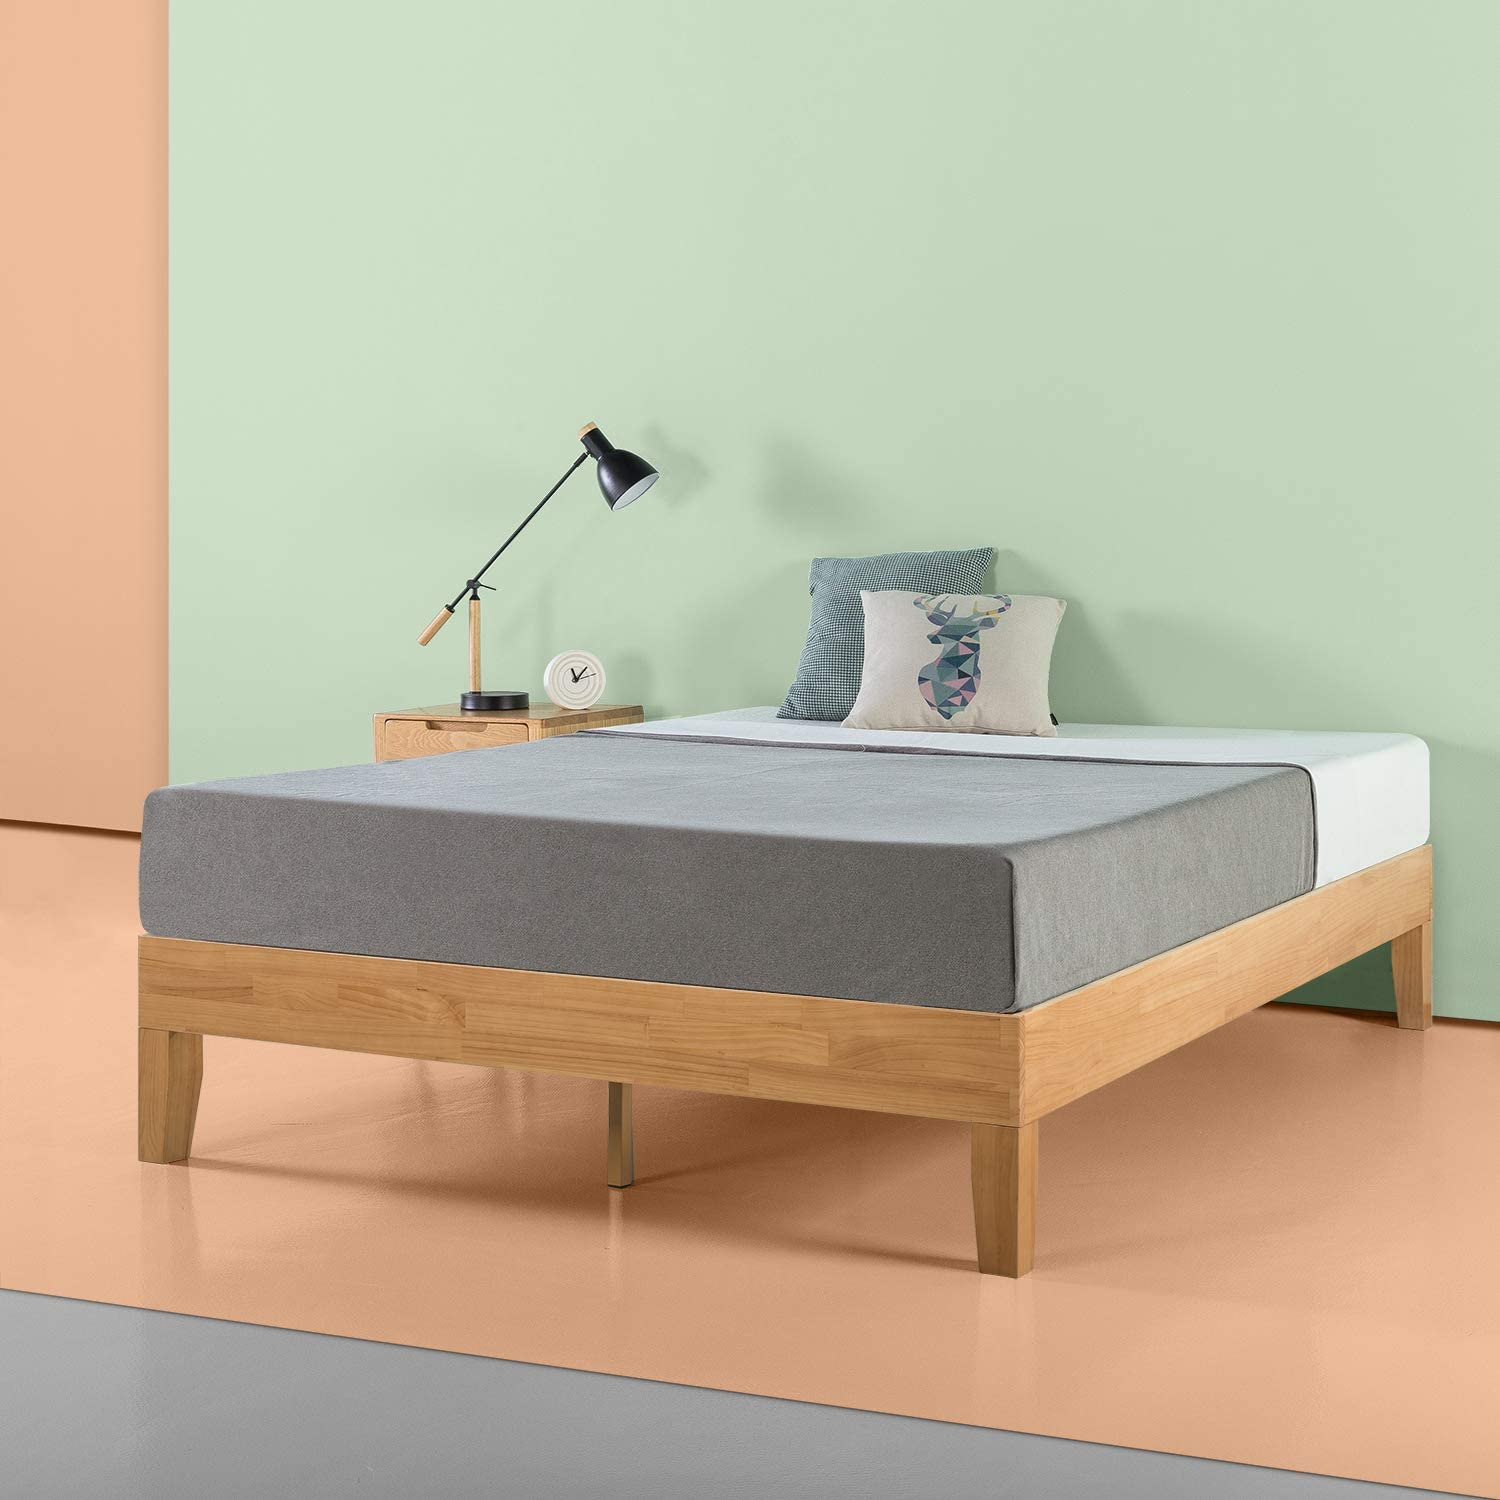 Zinus Moiz 14 Inch Deluxe Solid Wood Platform Bed / No Box Spring Needed / Wood Slat Support / Natural Finish, Twin